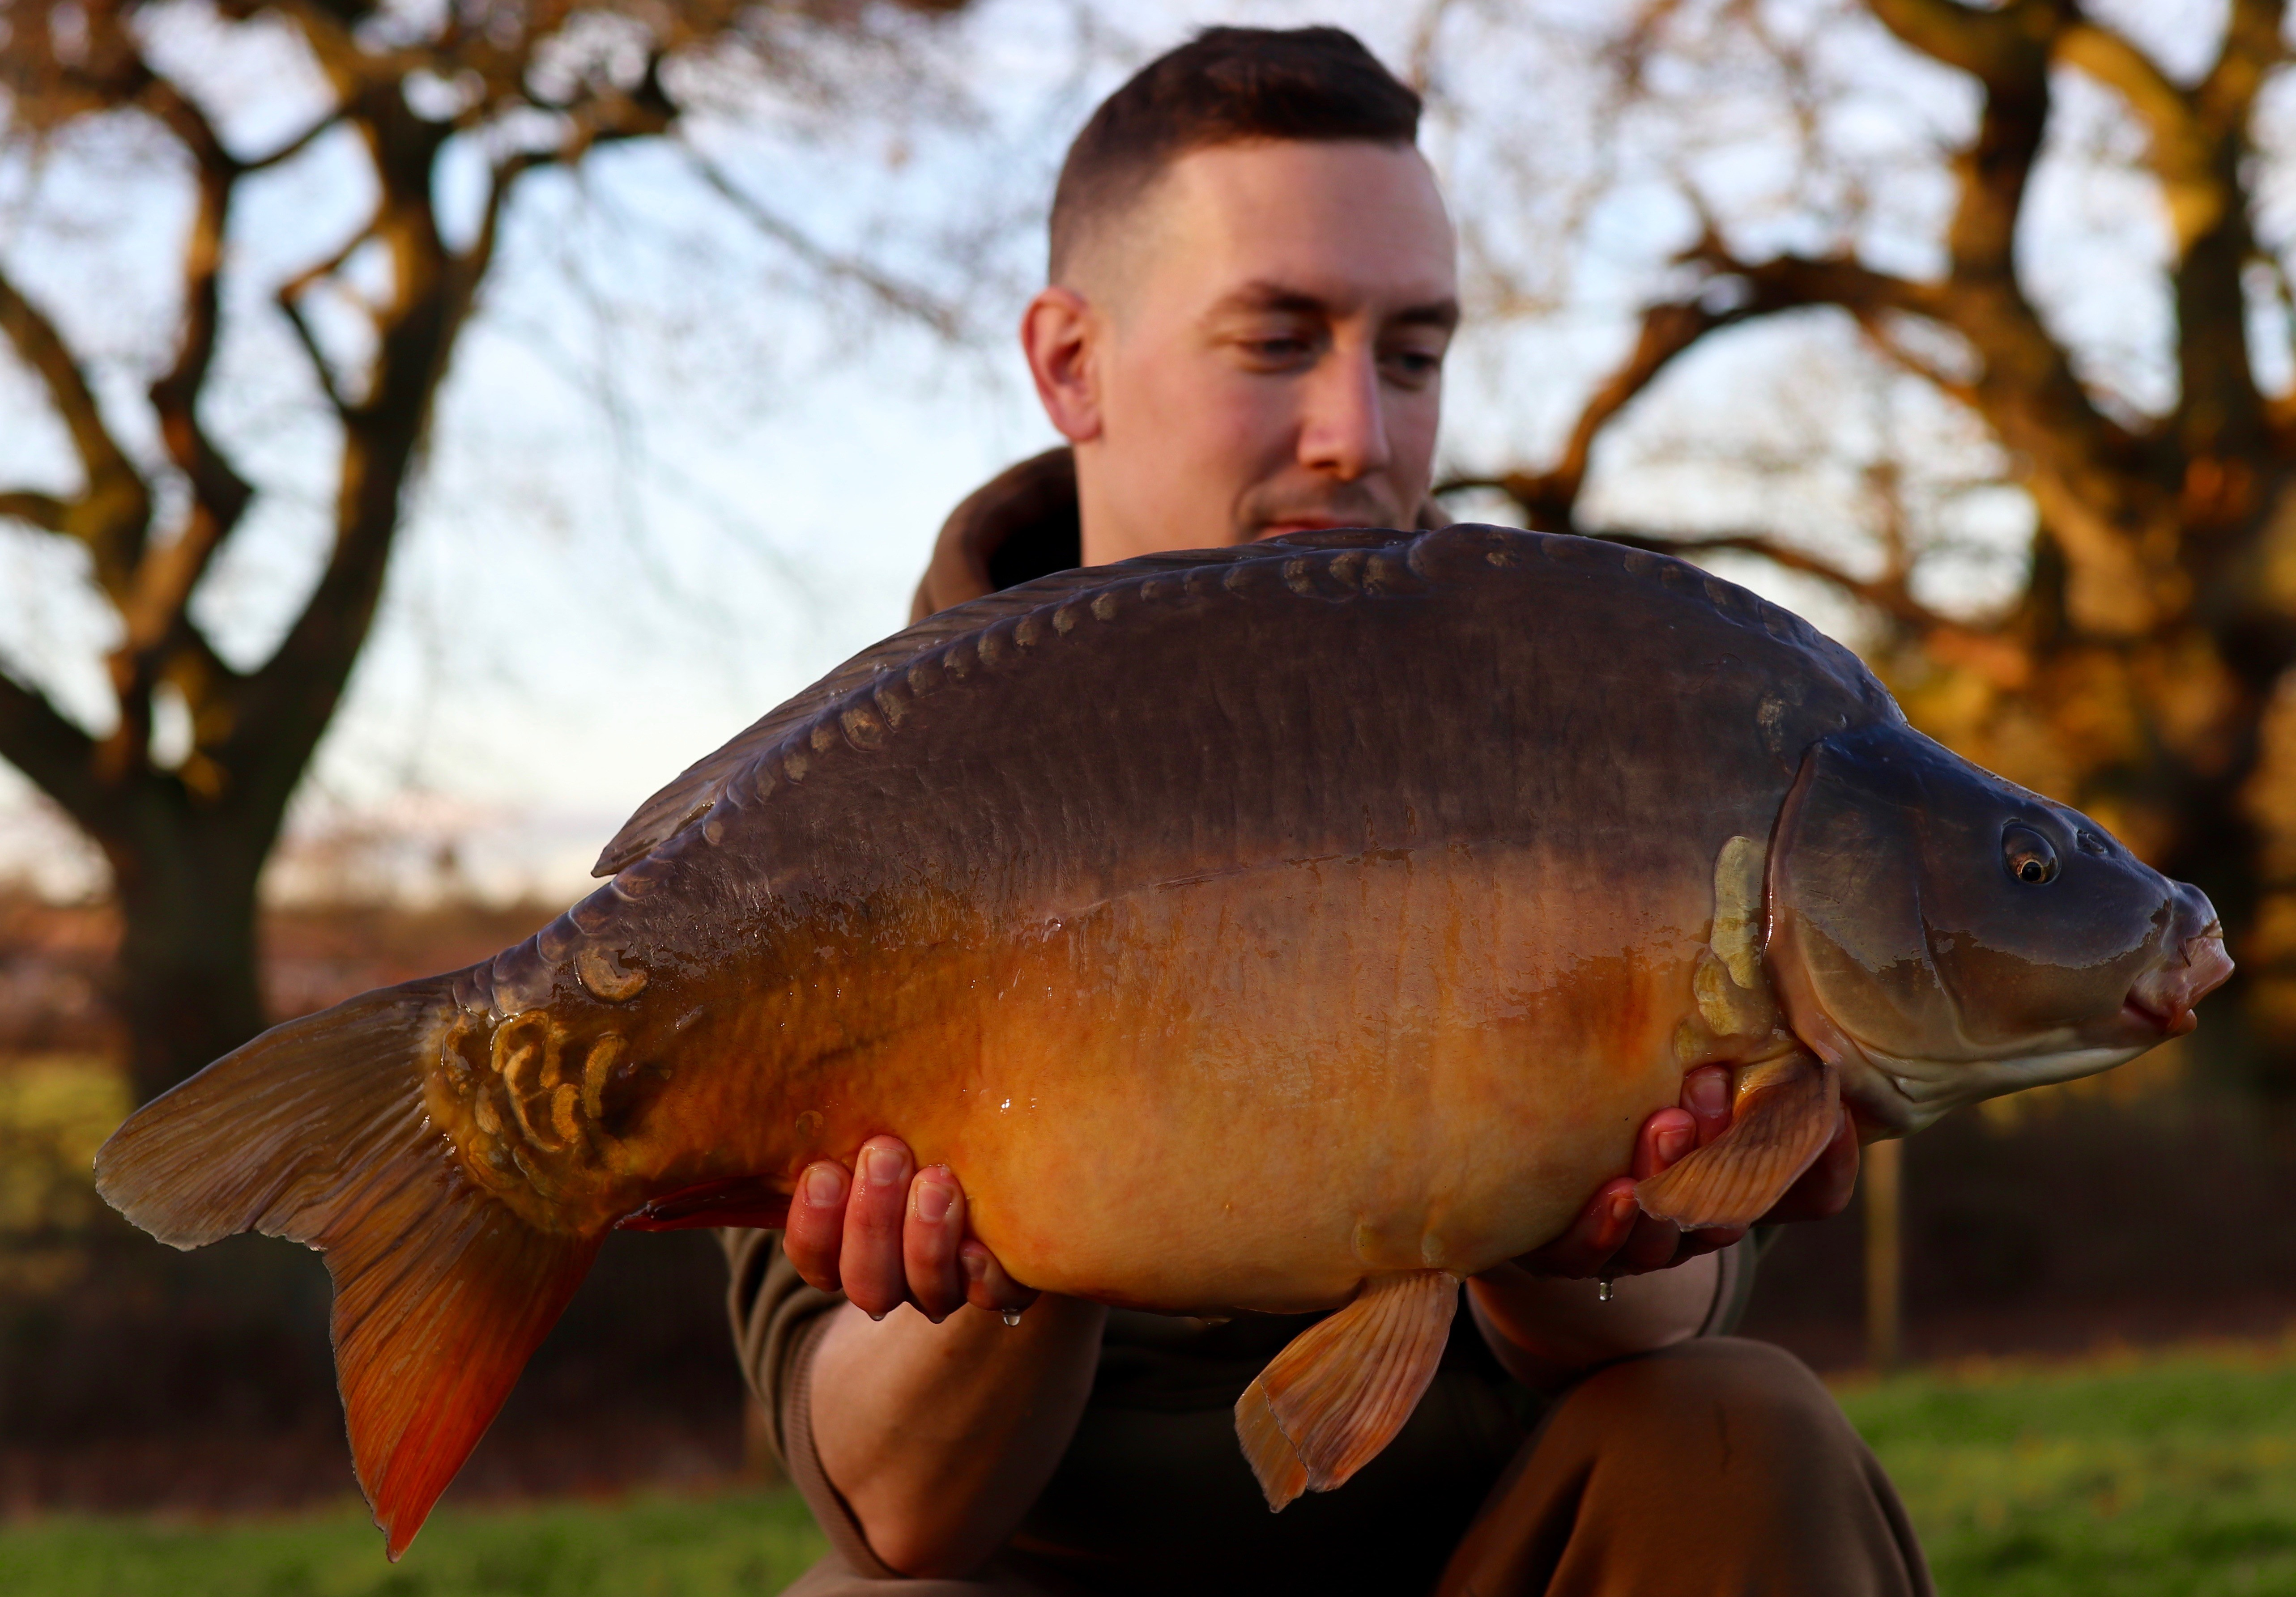 20lb 04oz caught on Pop-up with Maggots